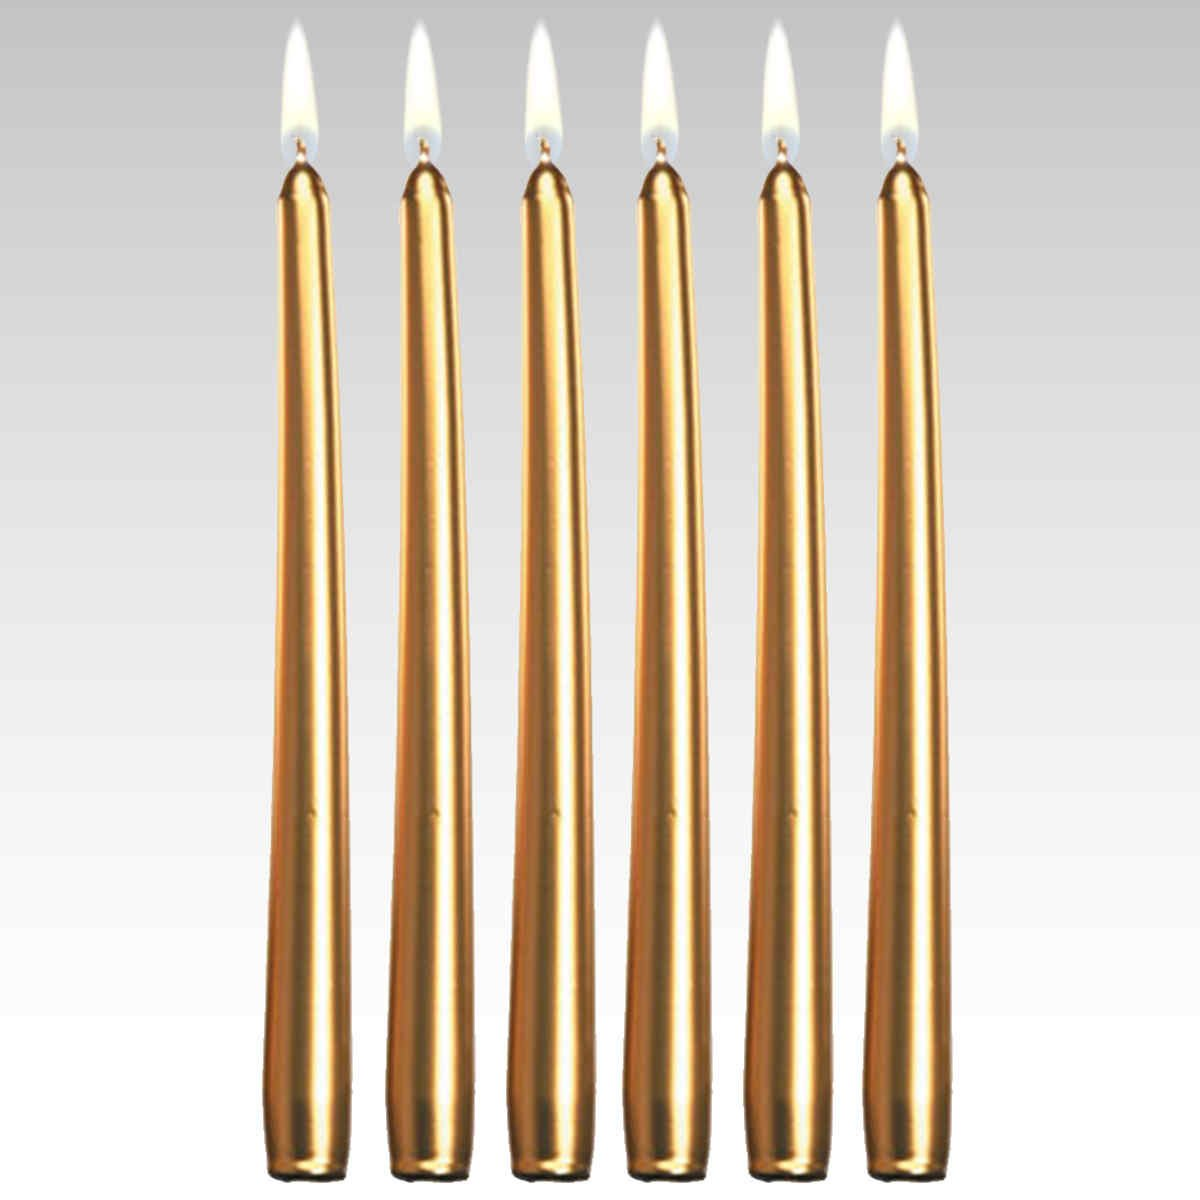 Candles4Less - 12 Inch Metallic Gold Taper Candles (144 Pieces/ Bulk), Gold Taper Candles Dripless Unscented with Lead Free Cotton Wicks Made in USA